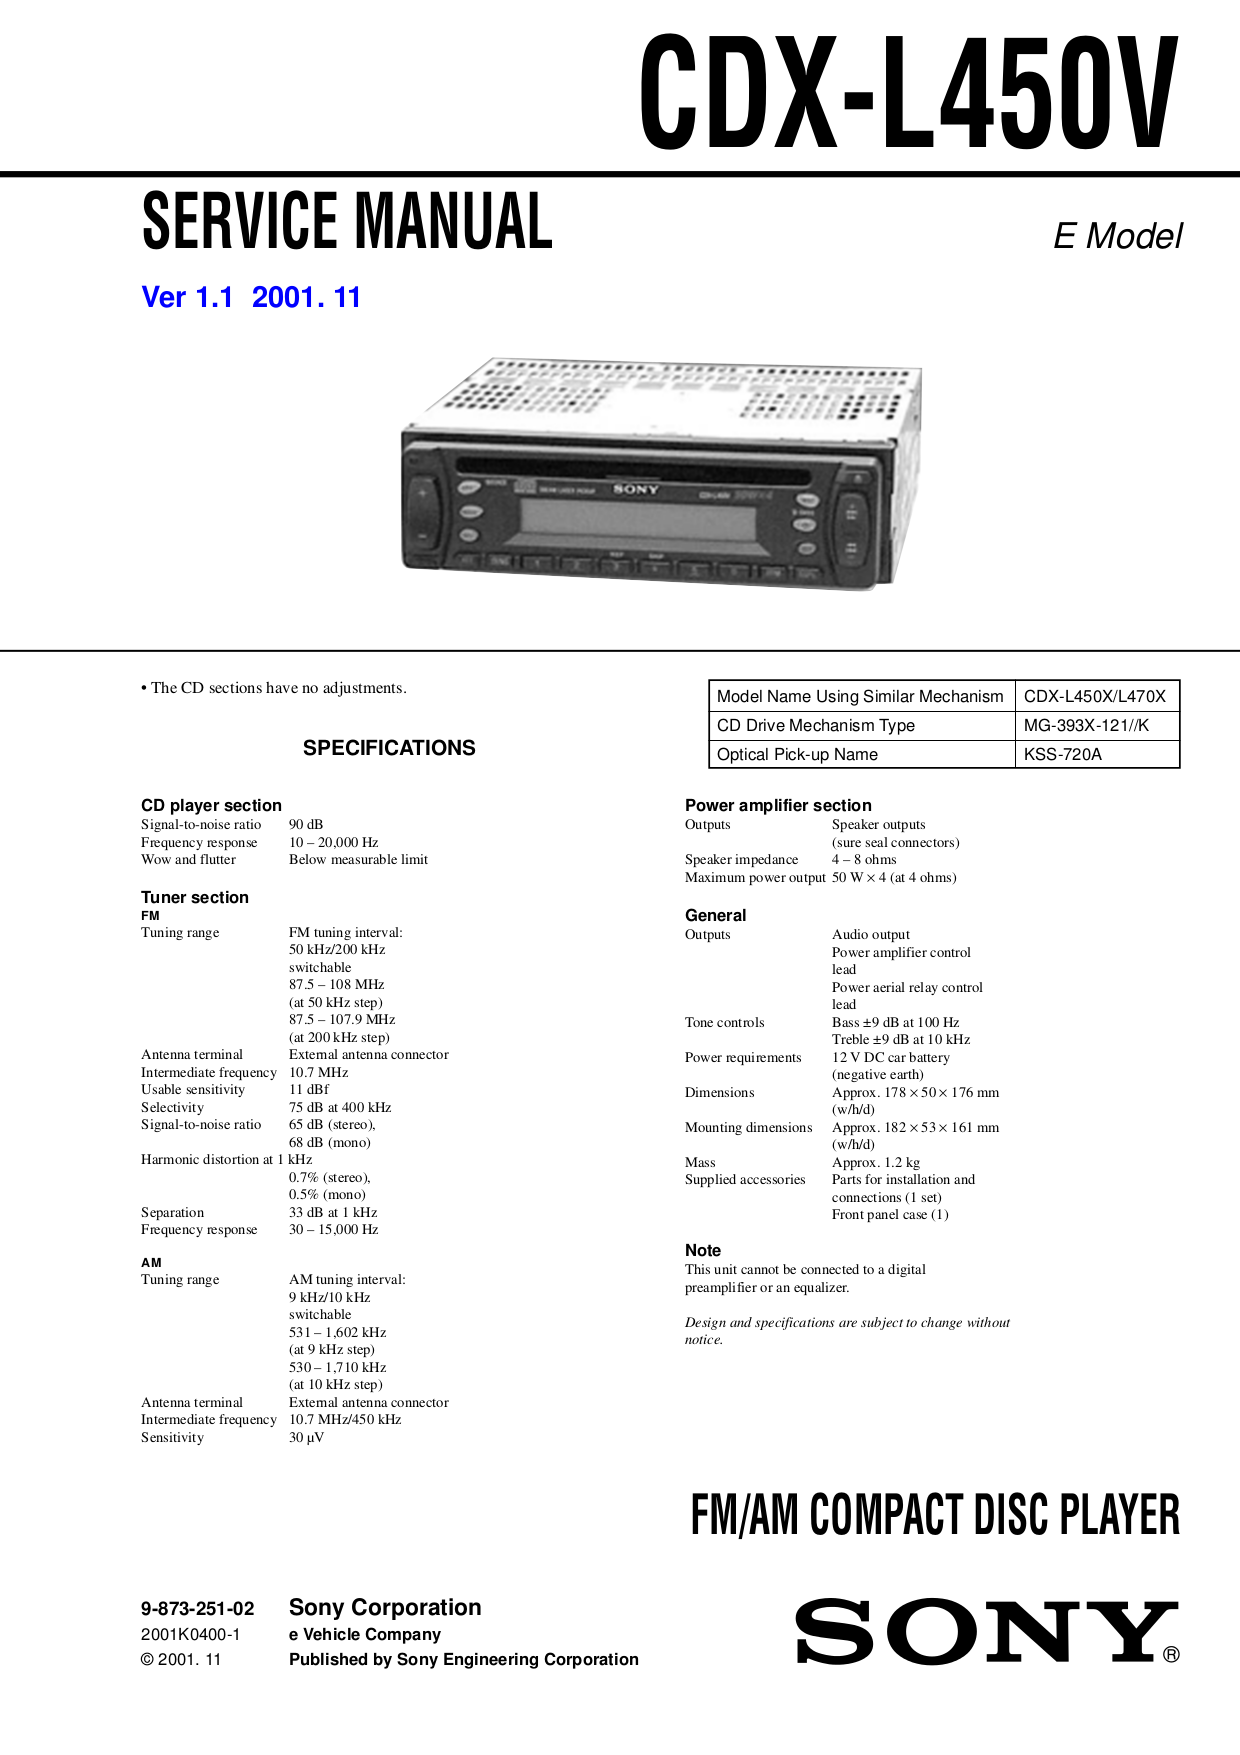 Download free pdf for Sony CDX-L450X Car Receiver manual on sony cdx-gt270mp, sony cdx-gt575up, sony portable cd player, sony cdx-gt260mp, sony single din dvd car stereo,